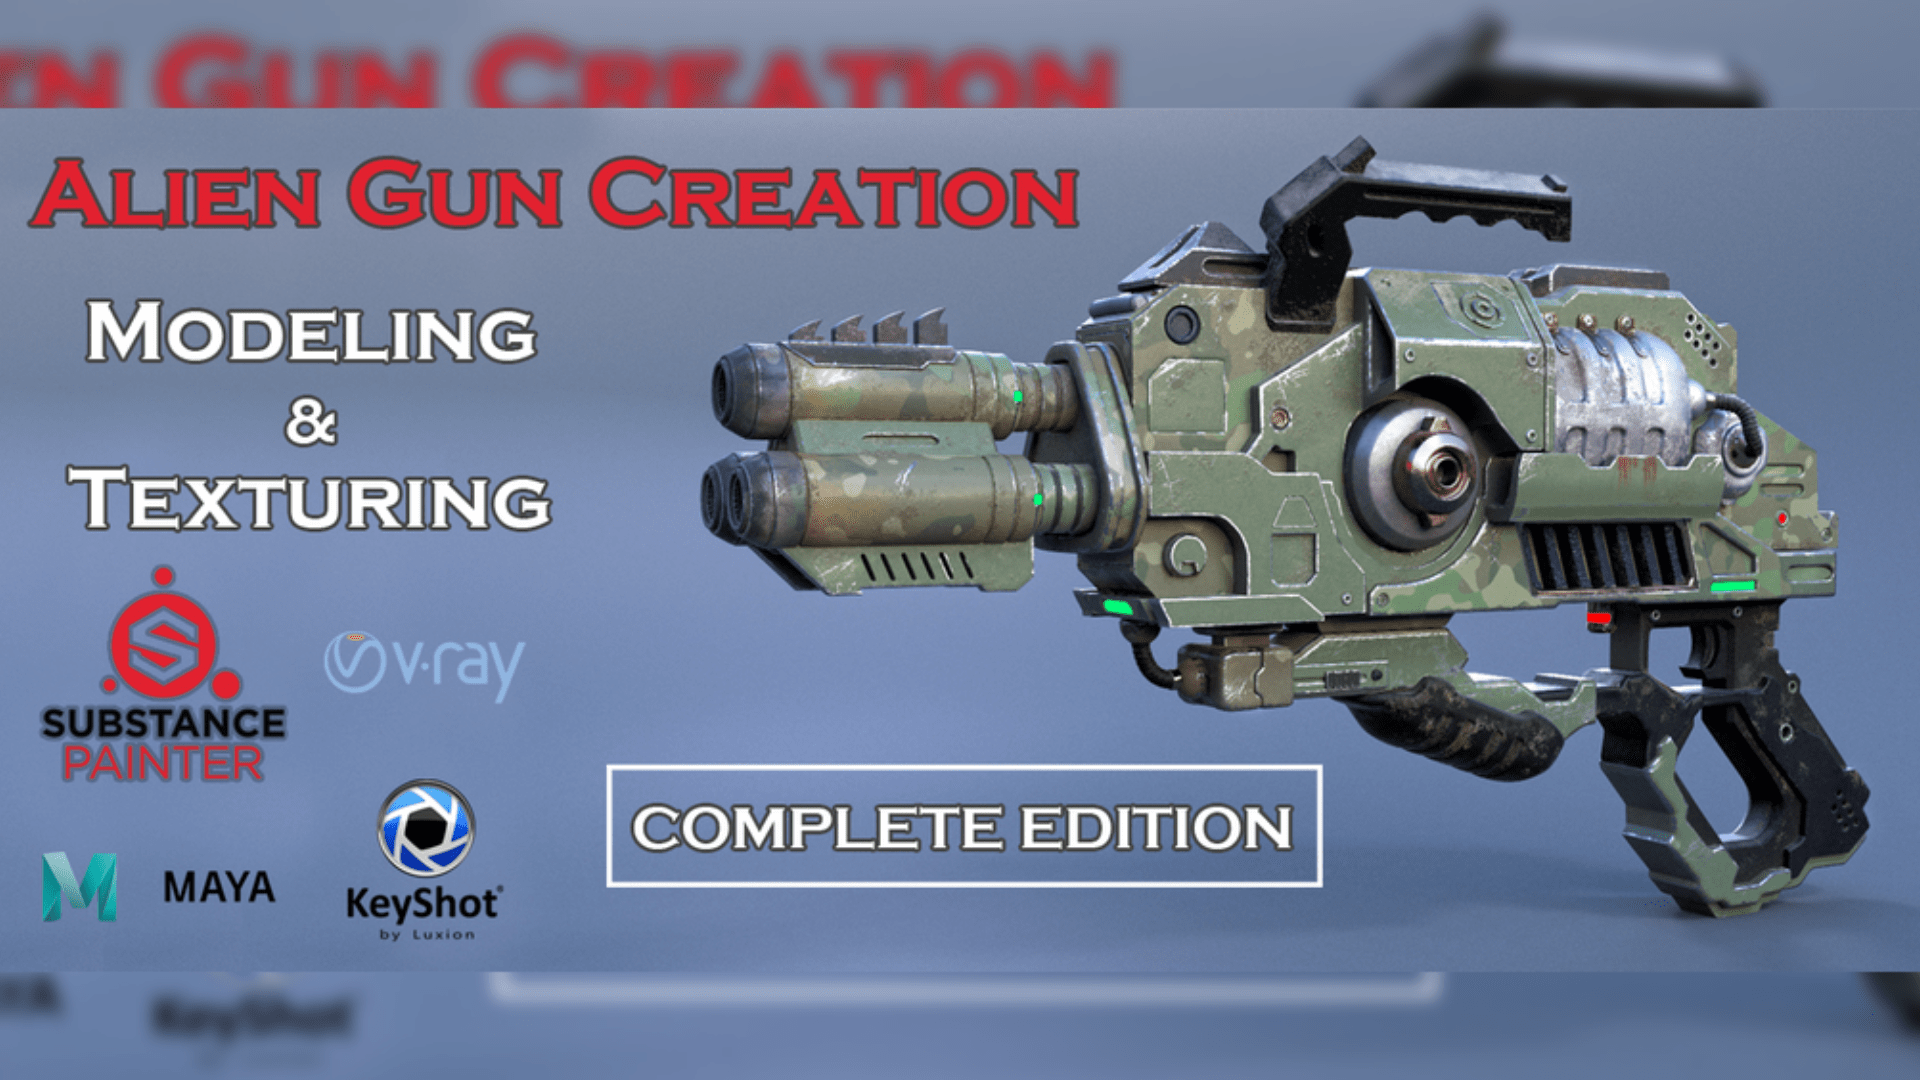 Alien gun creation full Bundle - Modeling & Texturing Complete Workflow - Maya Tutorials